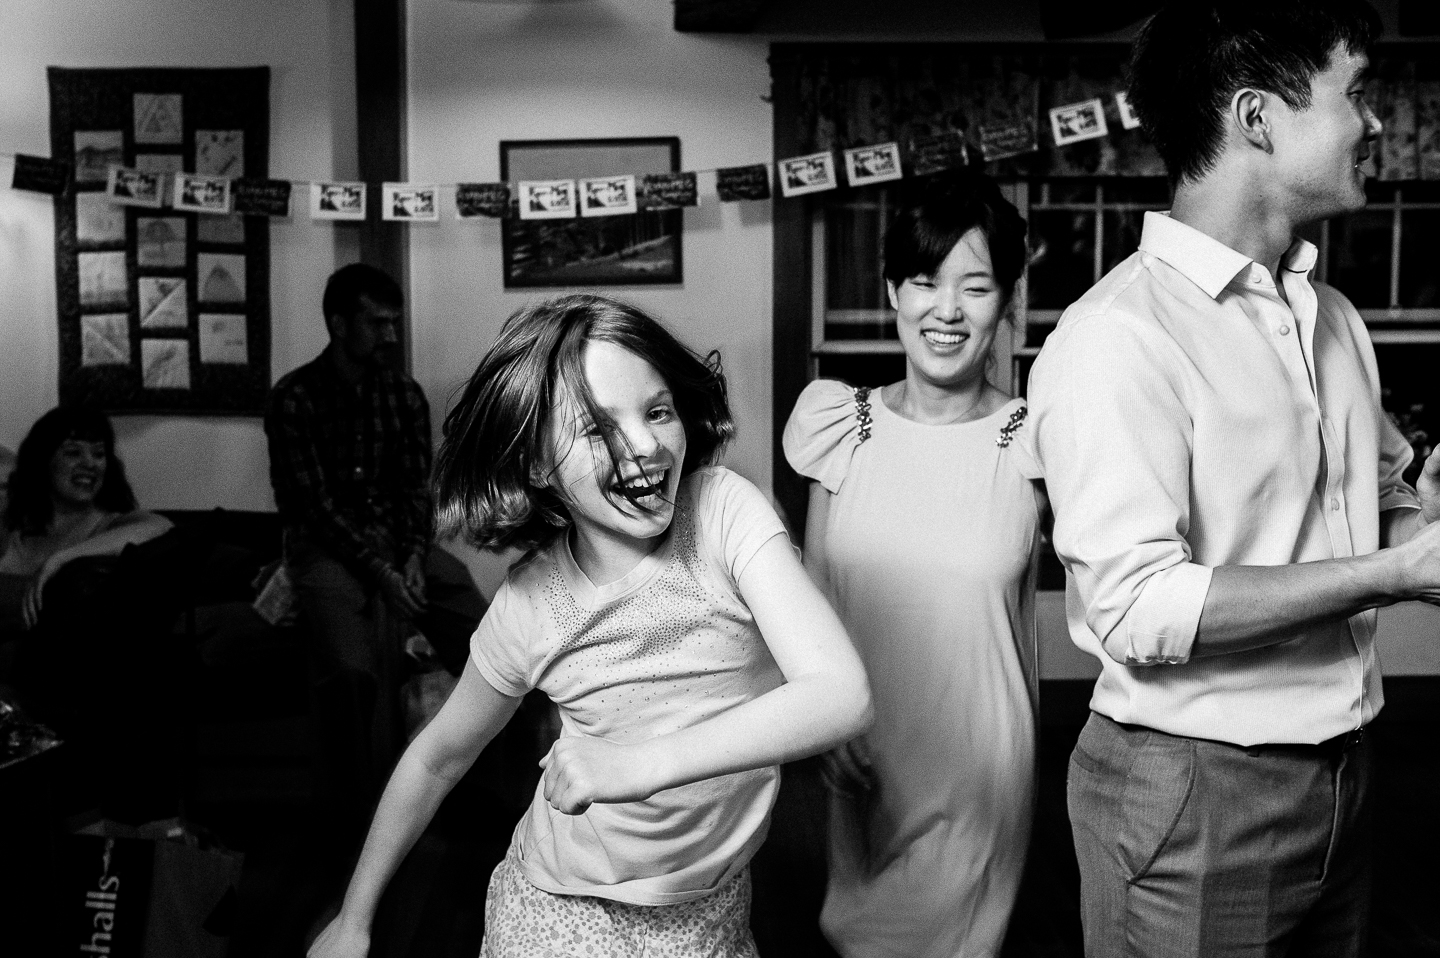 young wedding guest enjoys some contra dancing at a rustic wedding reception